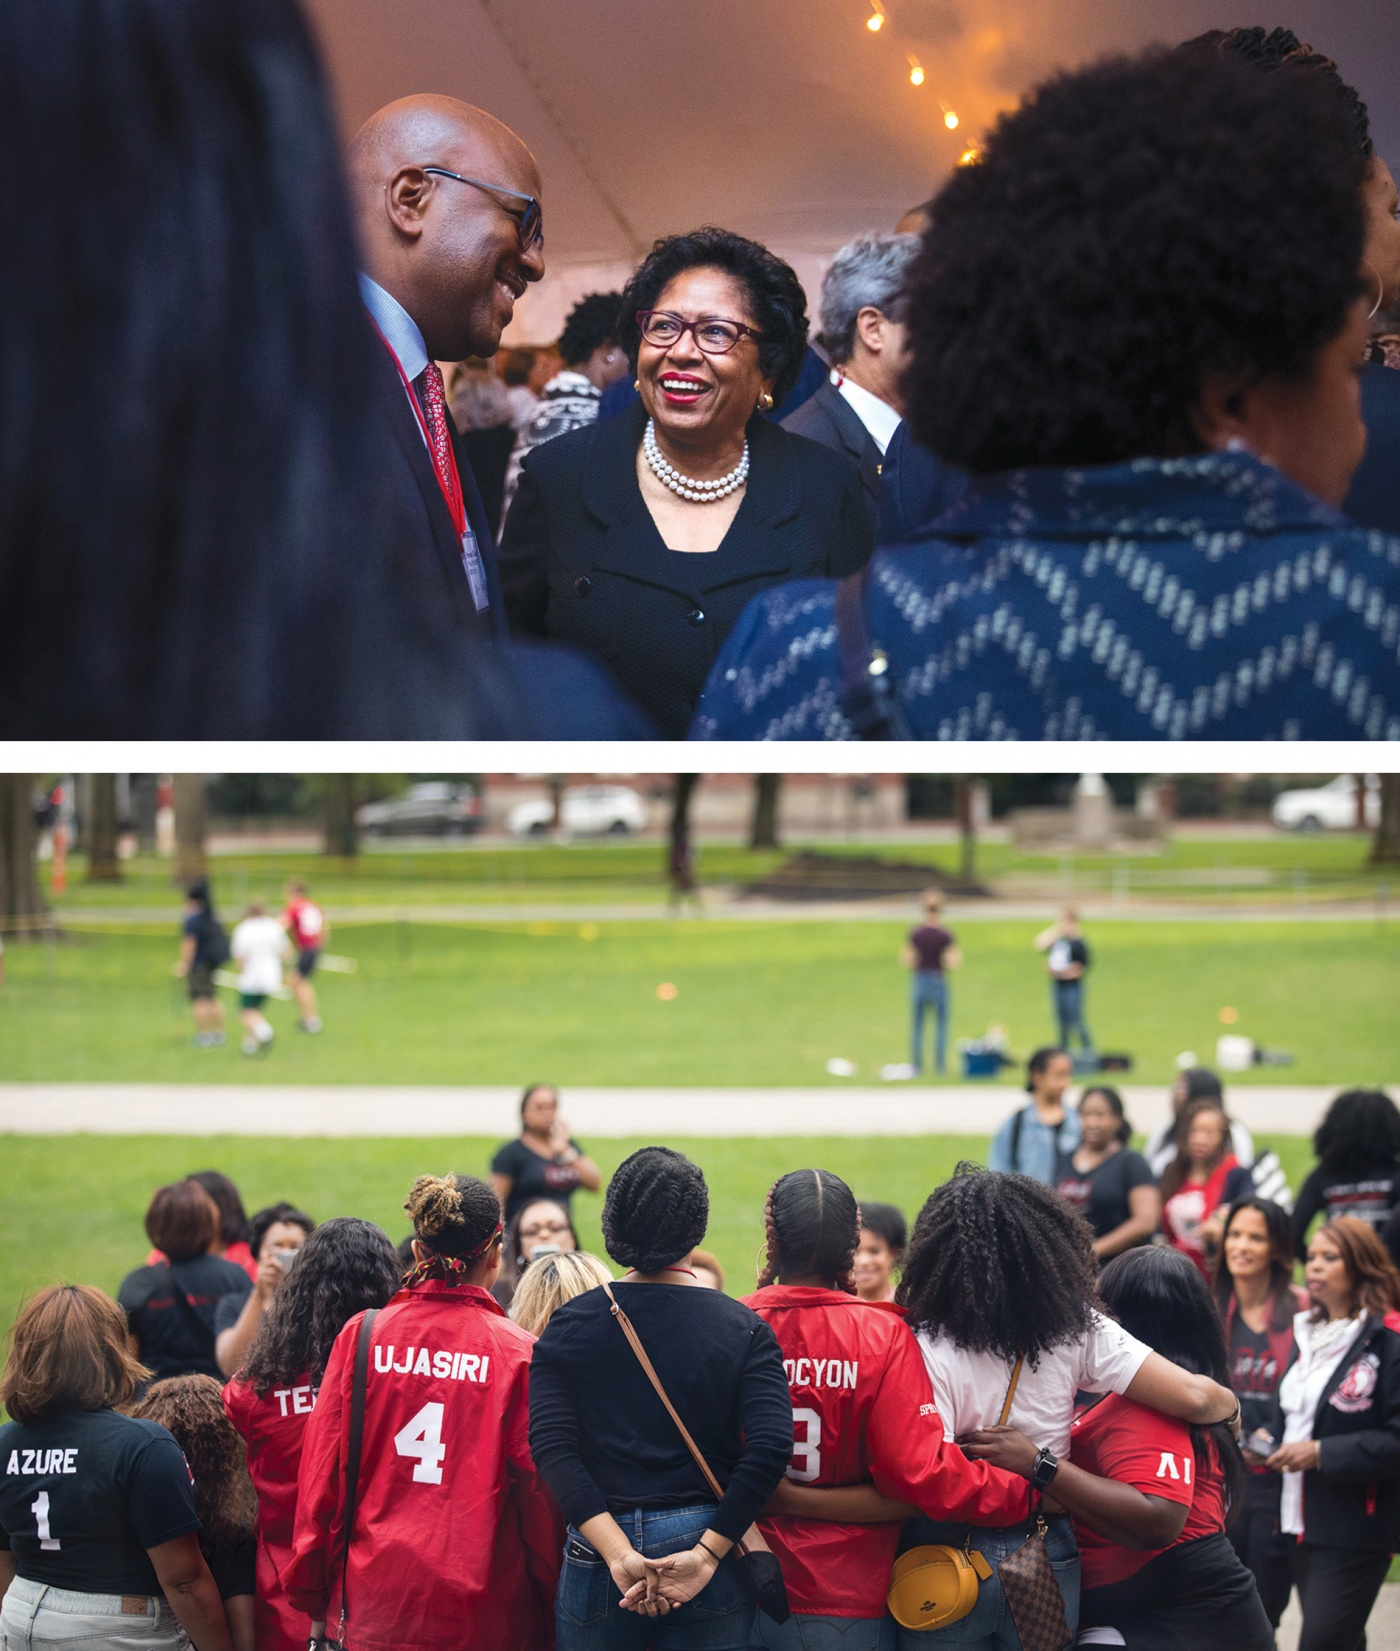 Photo of former President Ruth J. Simmons at top, and at bottom: friends pose for a photo in front of Faunce House.